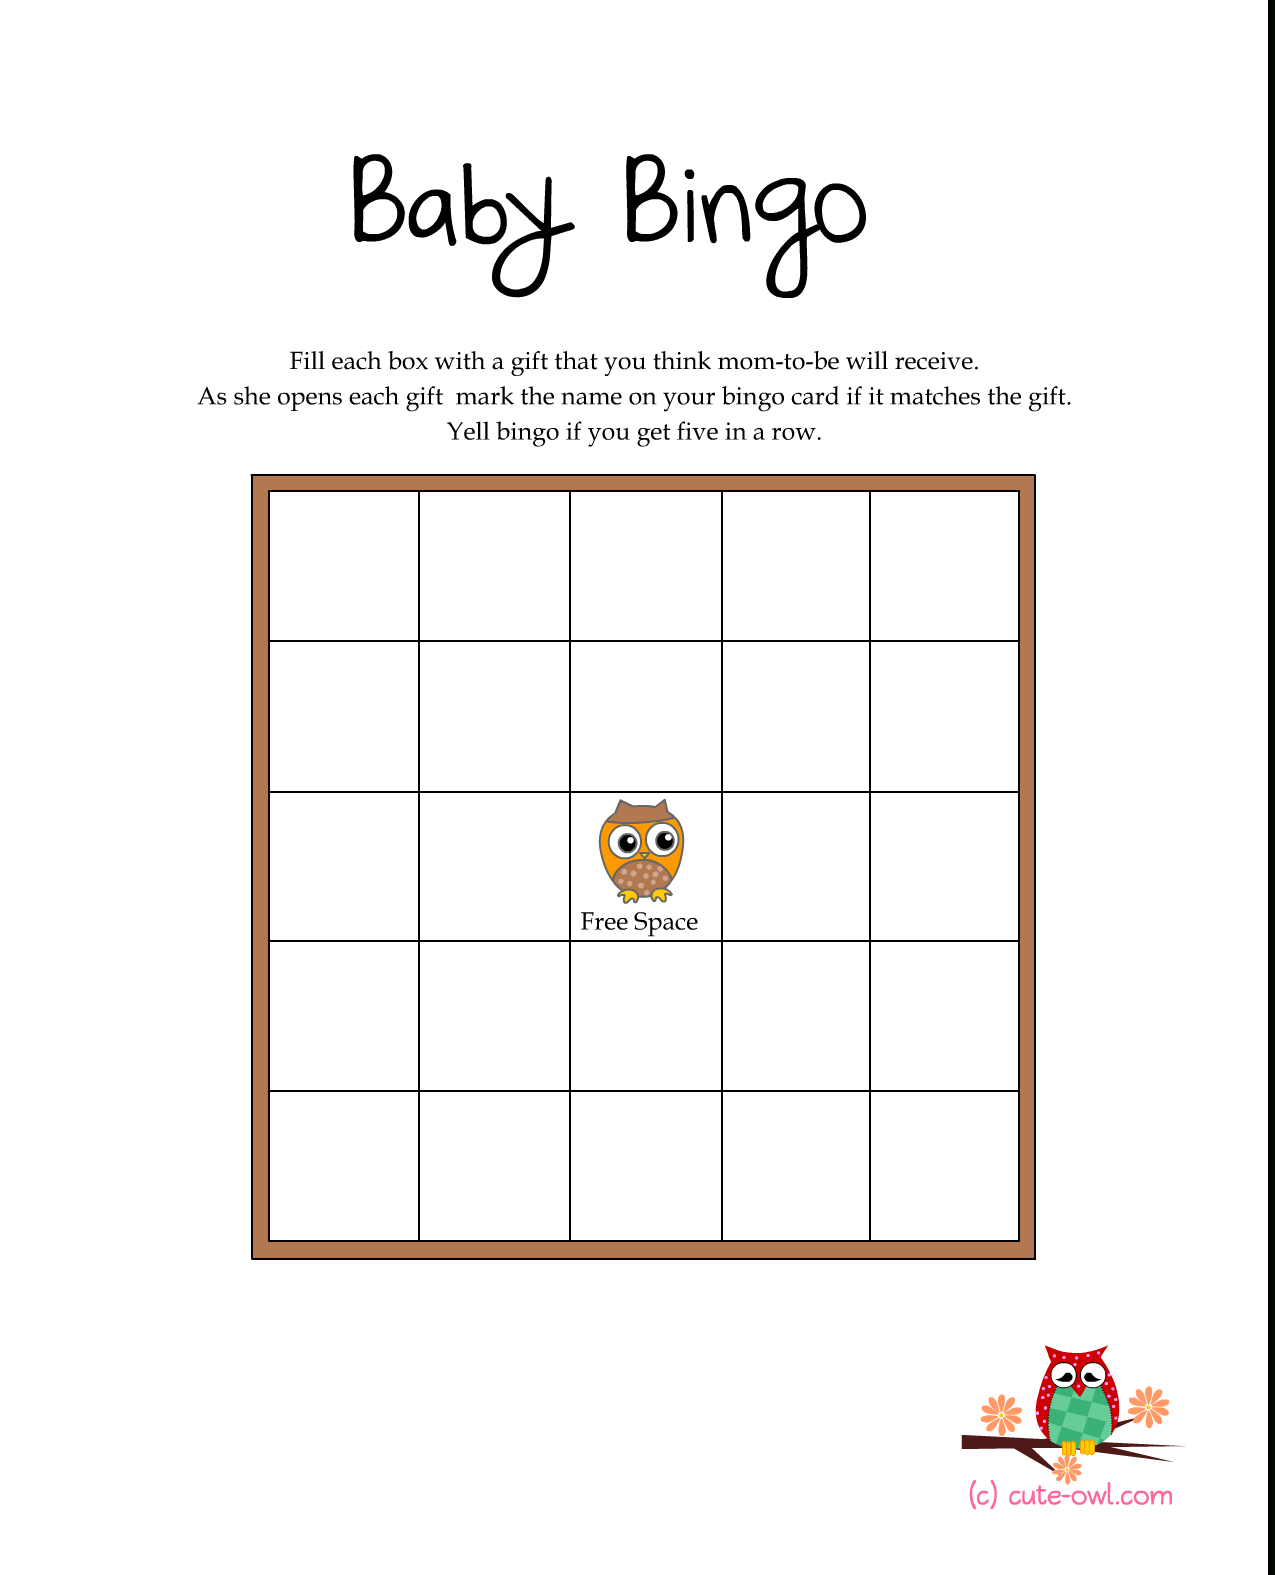 Free Printable Owl Themed Baby Shower Games   Woodland Animal Themed - Free Printable Baby Shower Bingo Cards